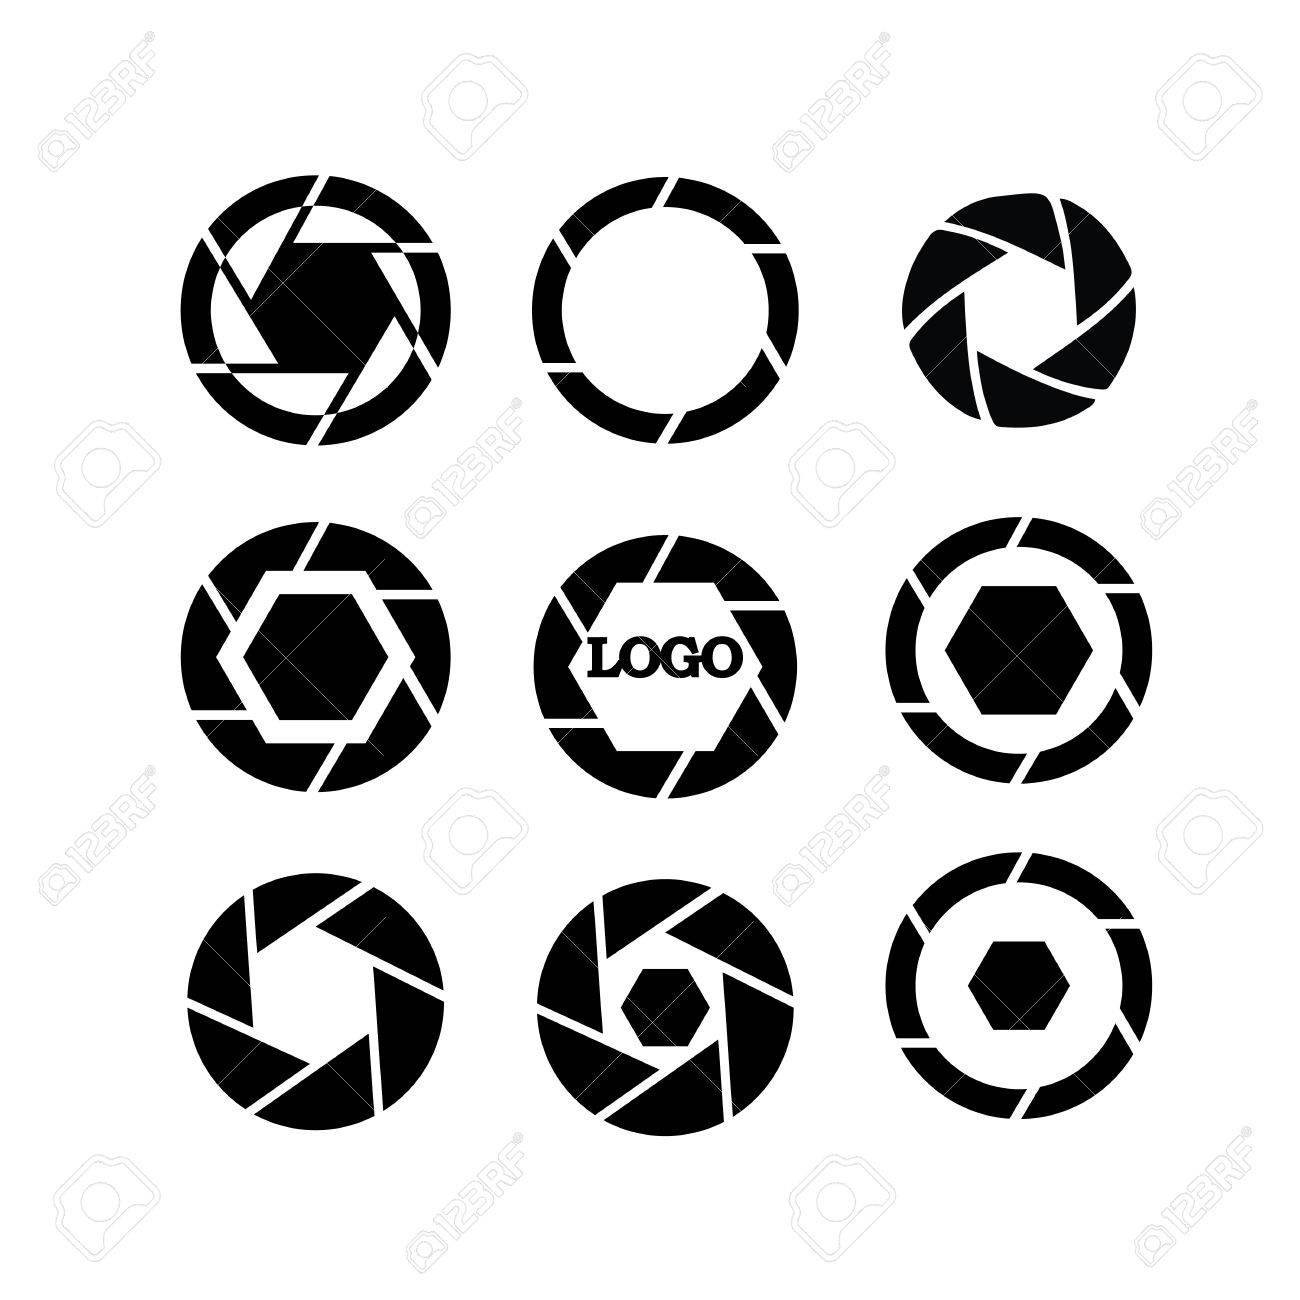 shutter vector camera objective icon shutter icon camera vector rh 123rf com vector camera logo vector camera system